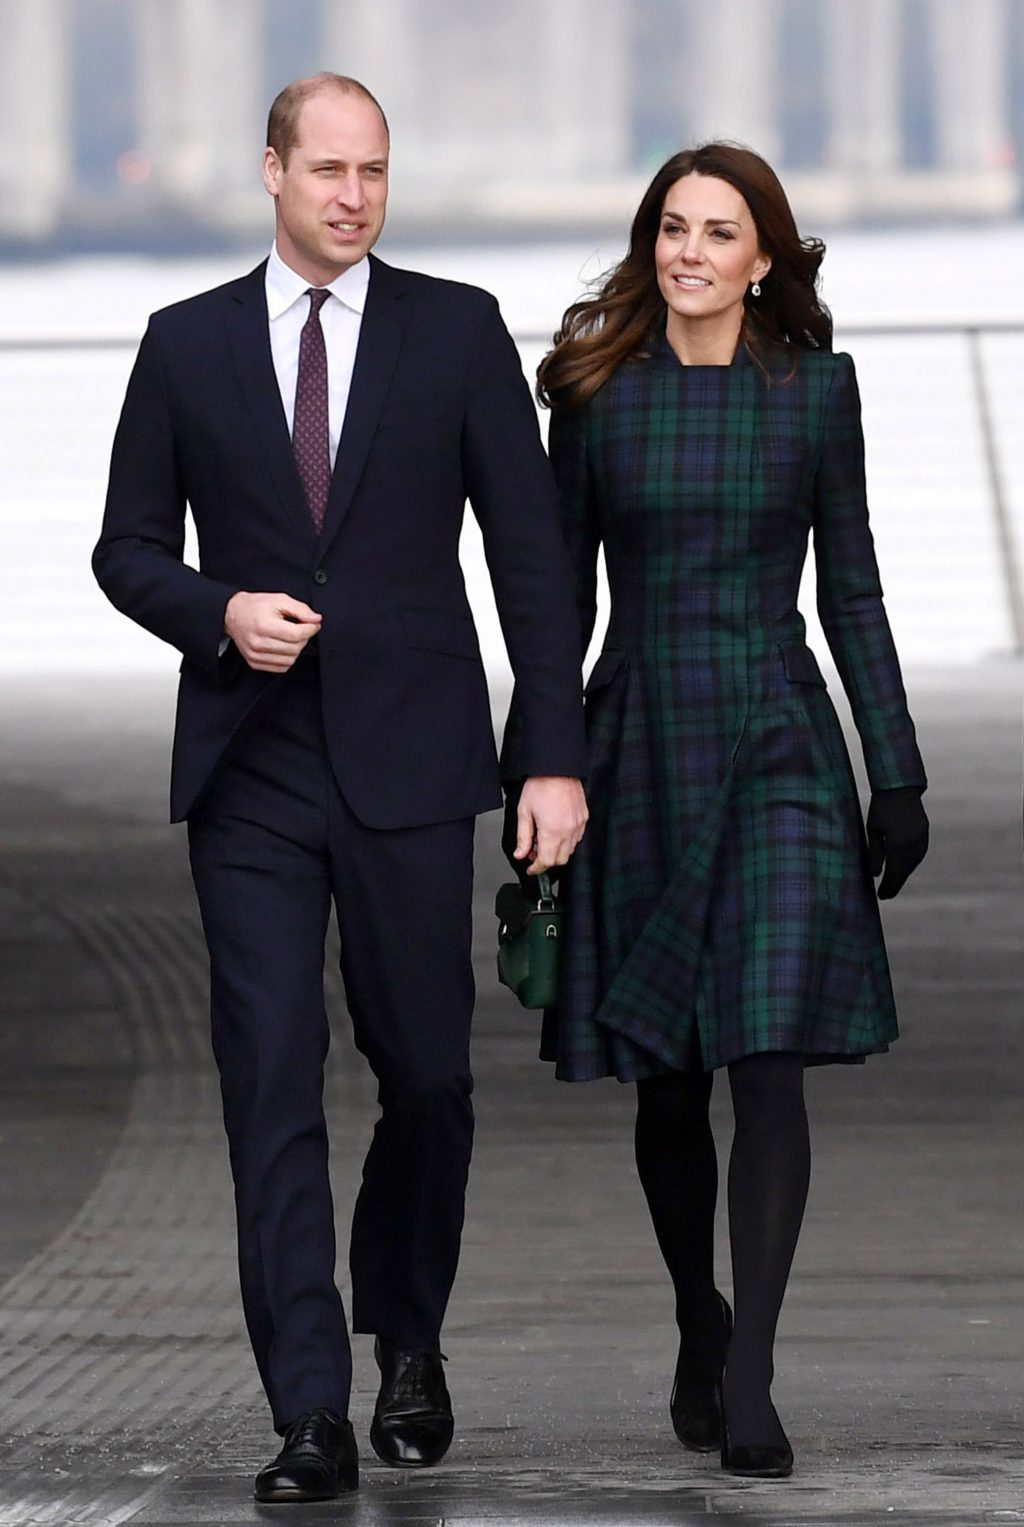 Gush Alert: This Is an Adorable First for Our Favorite Royal Couple